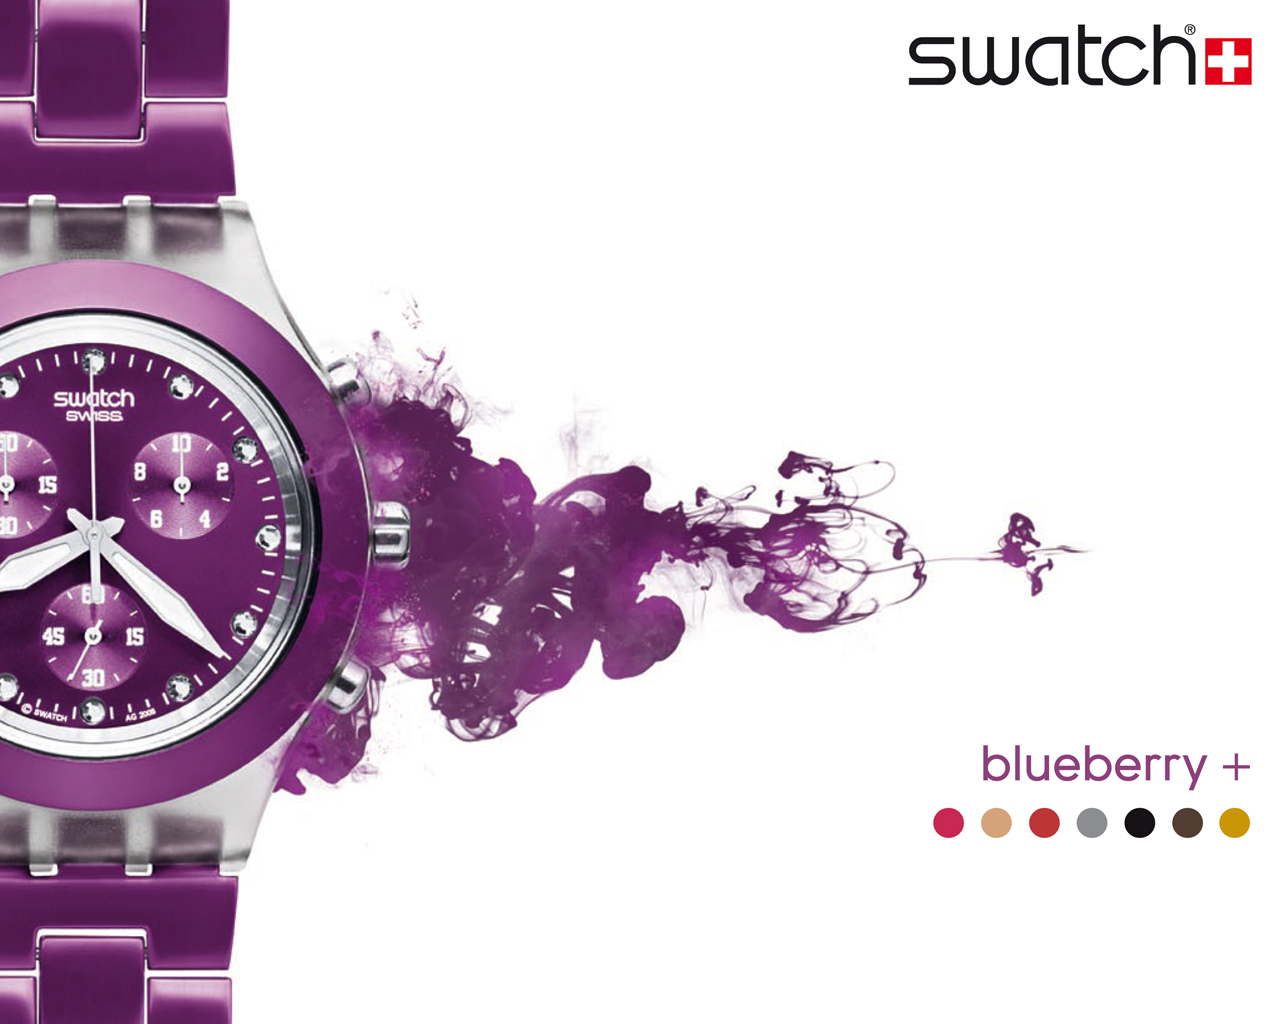 Swatch Wallpapers HD Wallpapers Download Free Images Wallpaper [1000image.com]